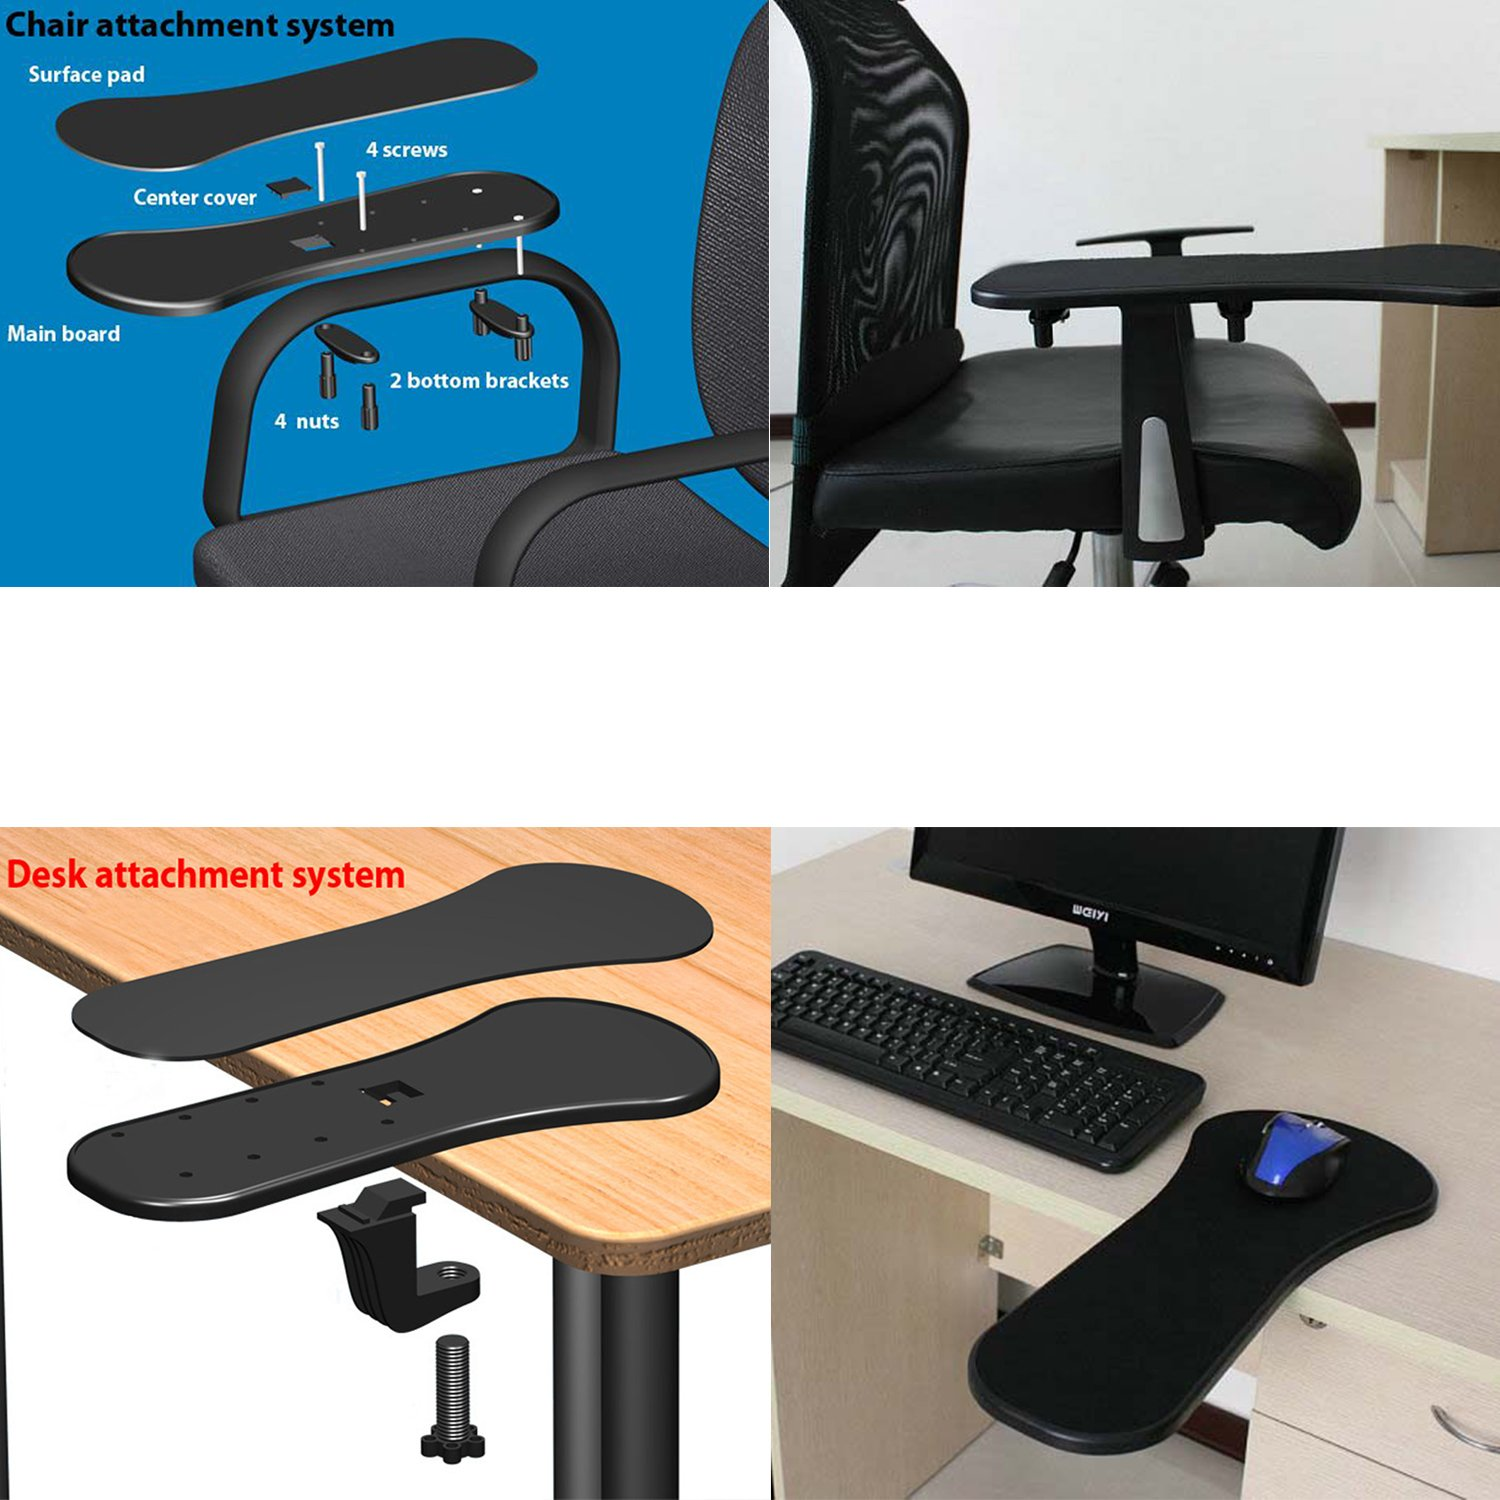 TRIXES Ergonomic Armrest Mouse Pad/Mat With Clamp For Chair Arm Or Desktop:  Amazon.co.uk: Office Products